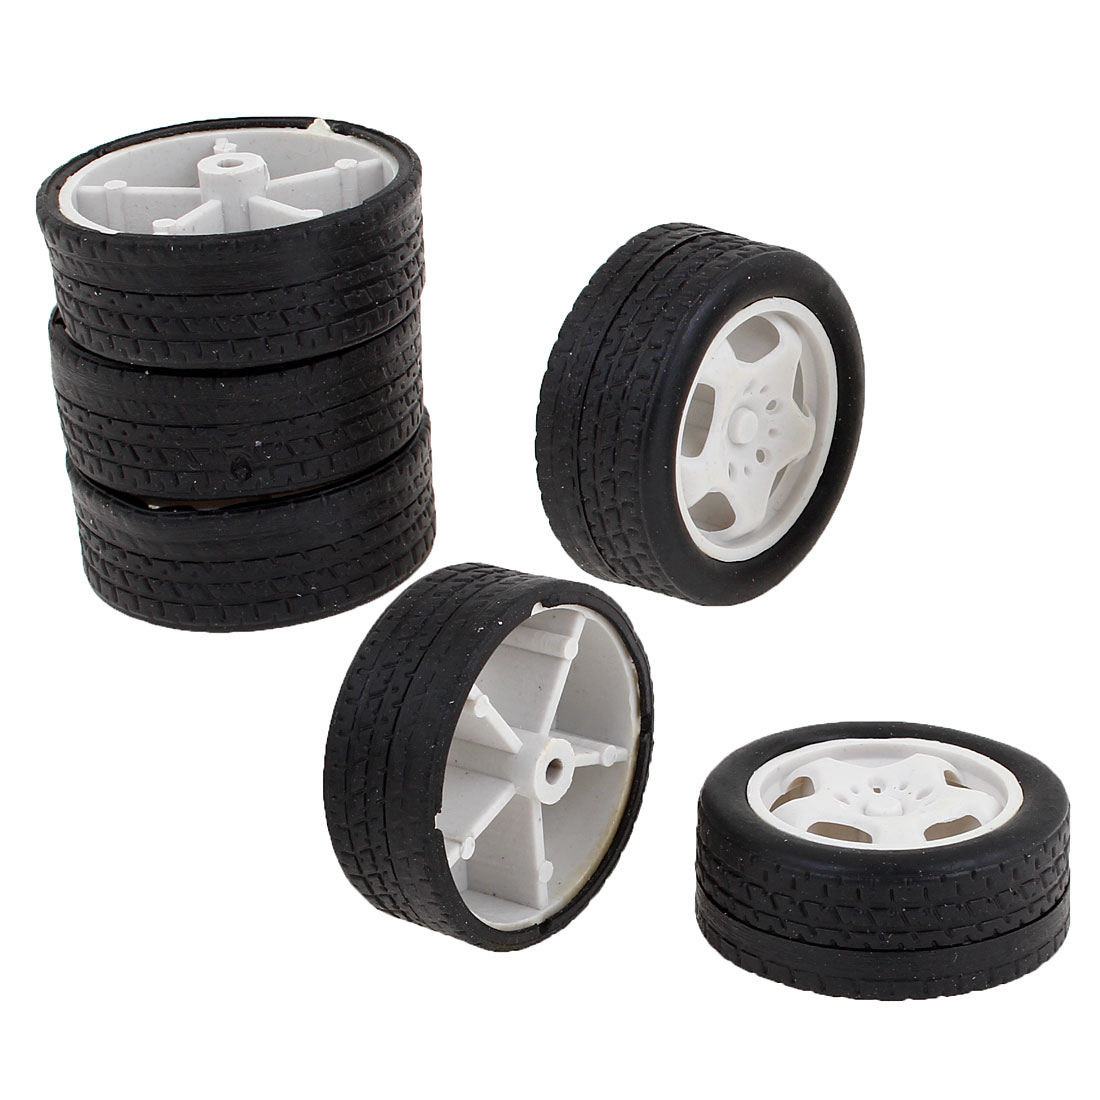 6PCS 34mm Dia Black Rubber Roll White Plastic Core Toy Vehicles Wheels for Kids